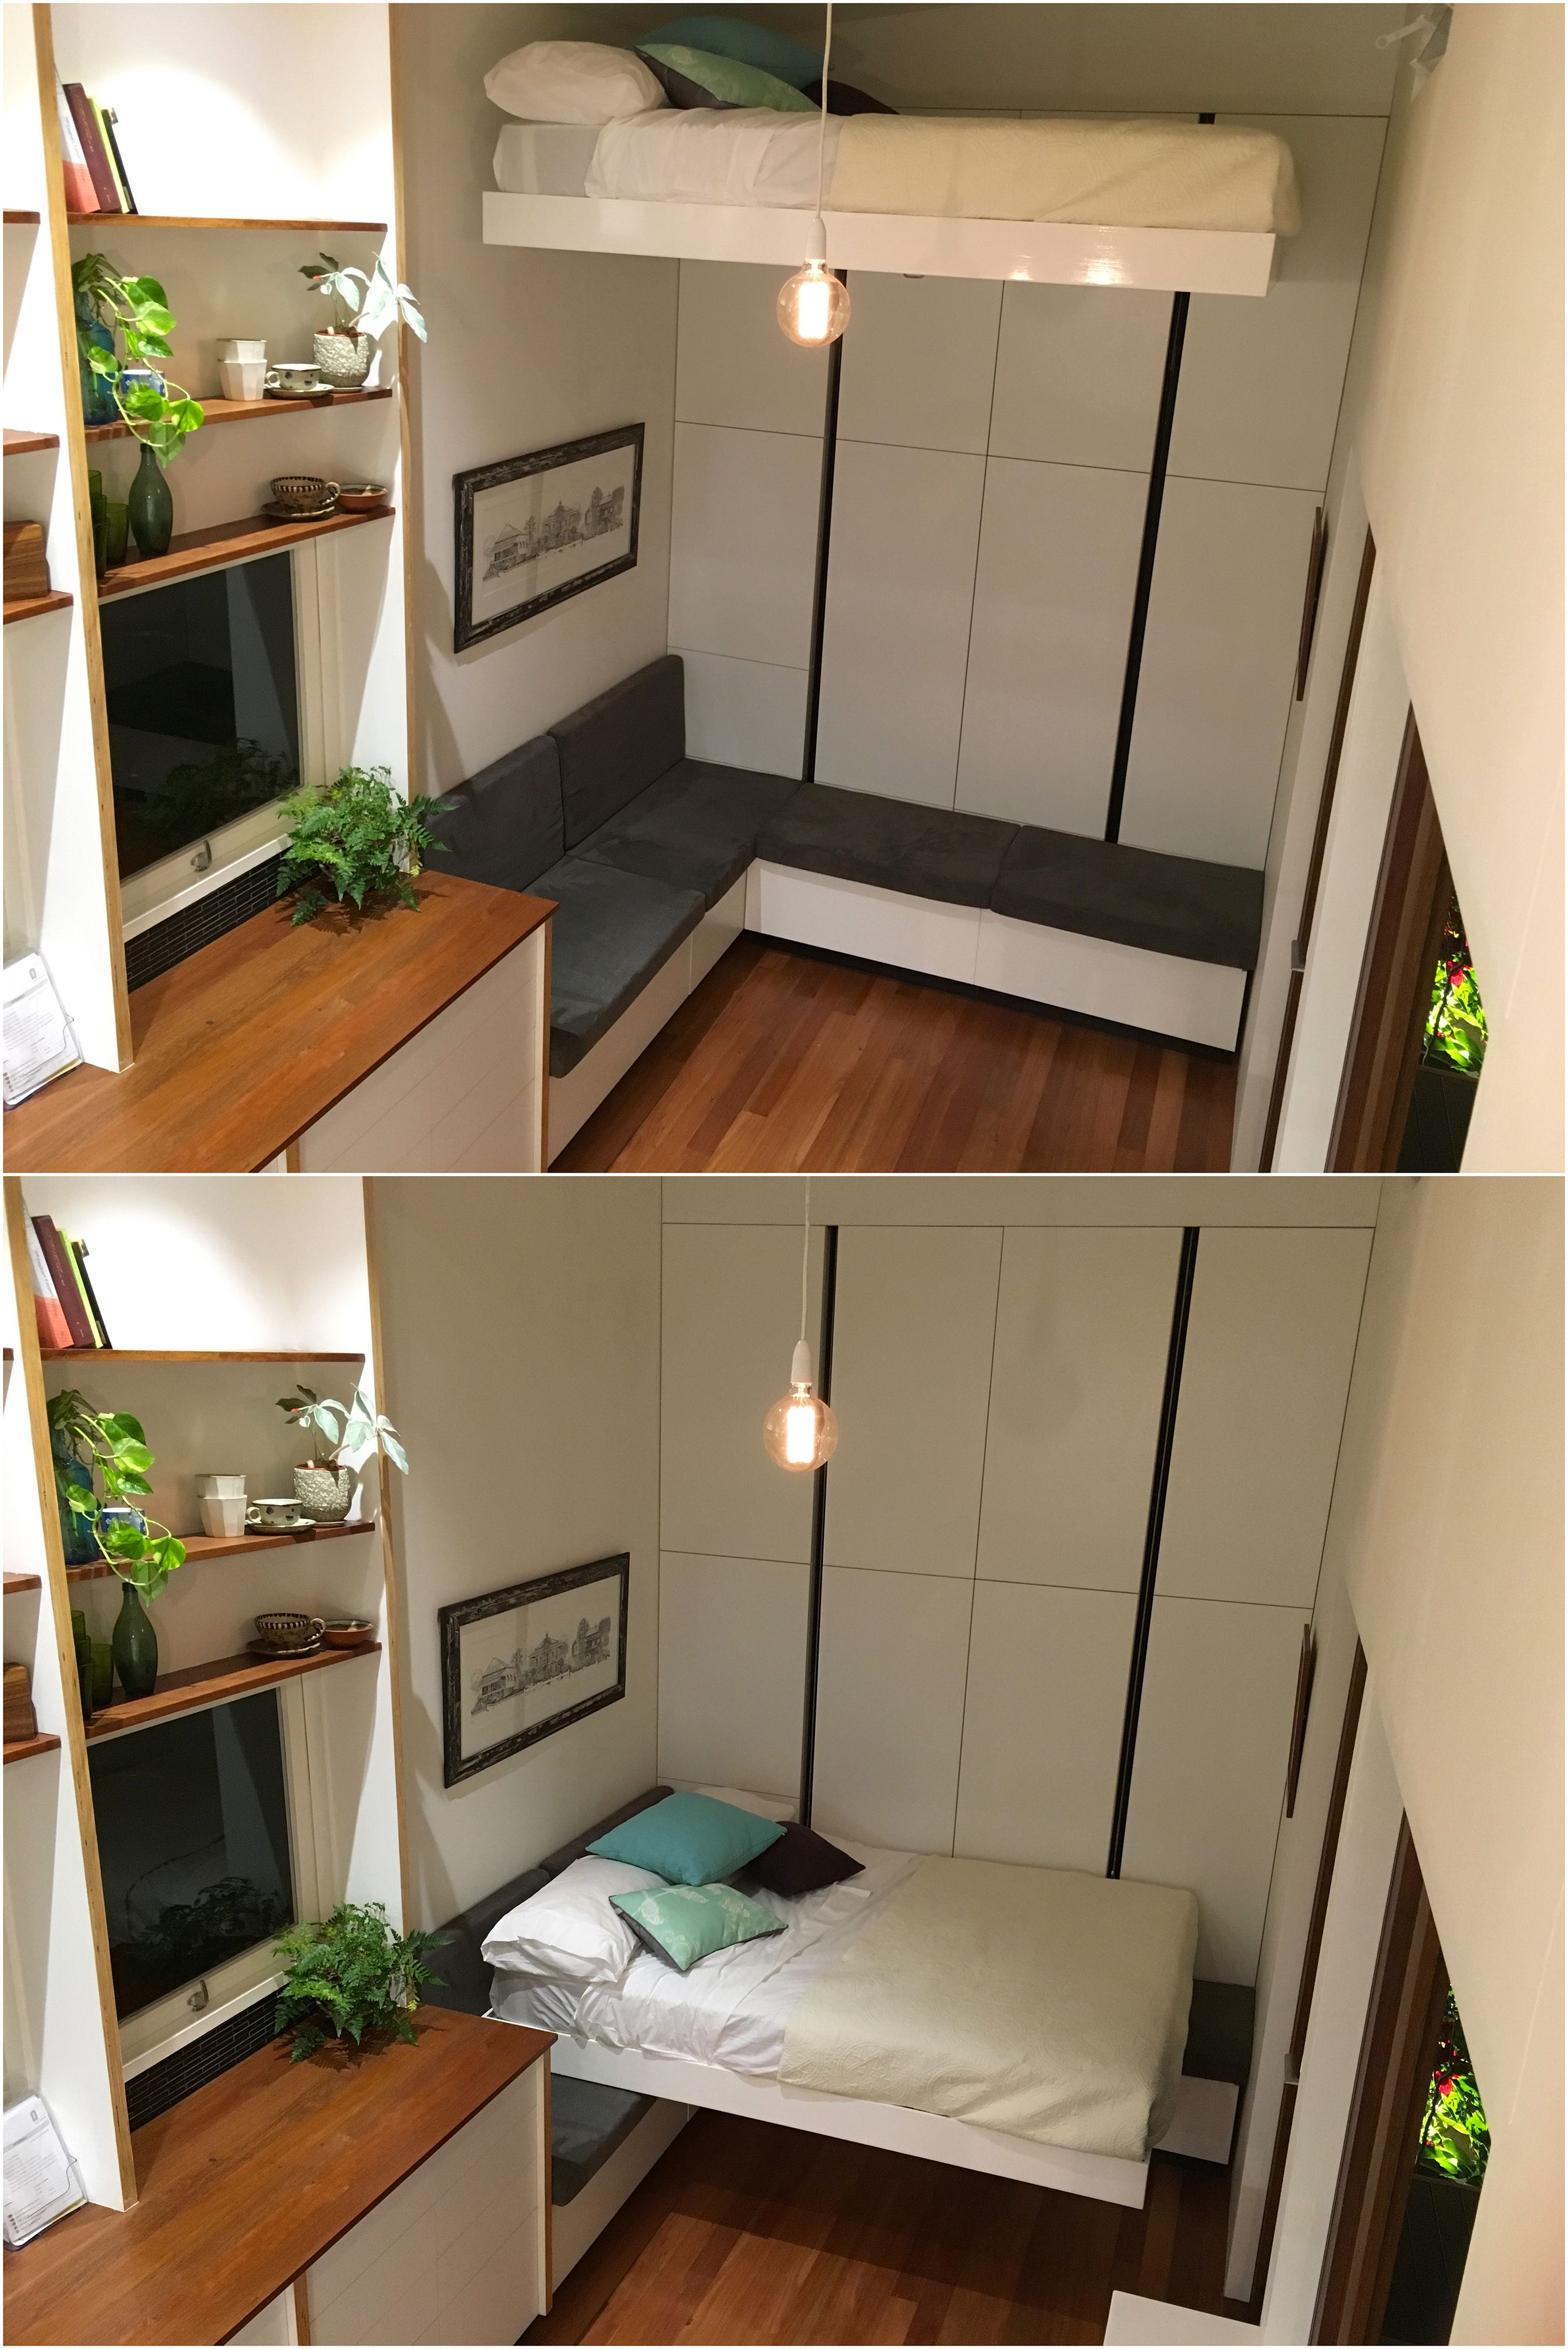 Loft bed with slide building plans  Retractable bed designed and built by Nathan Nostaw for the Tiny